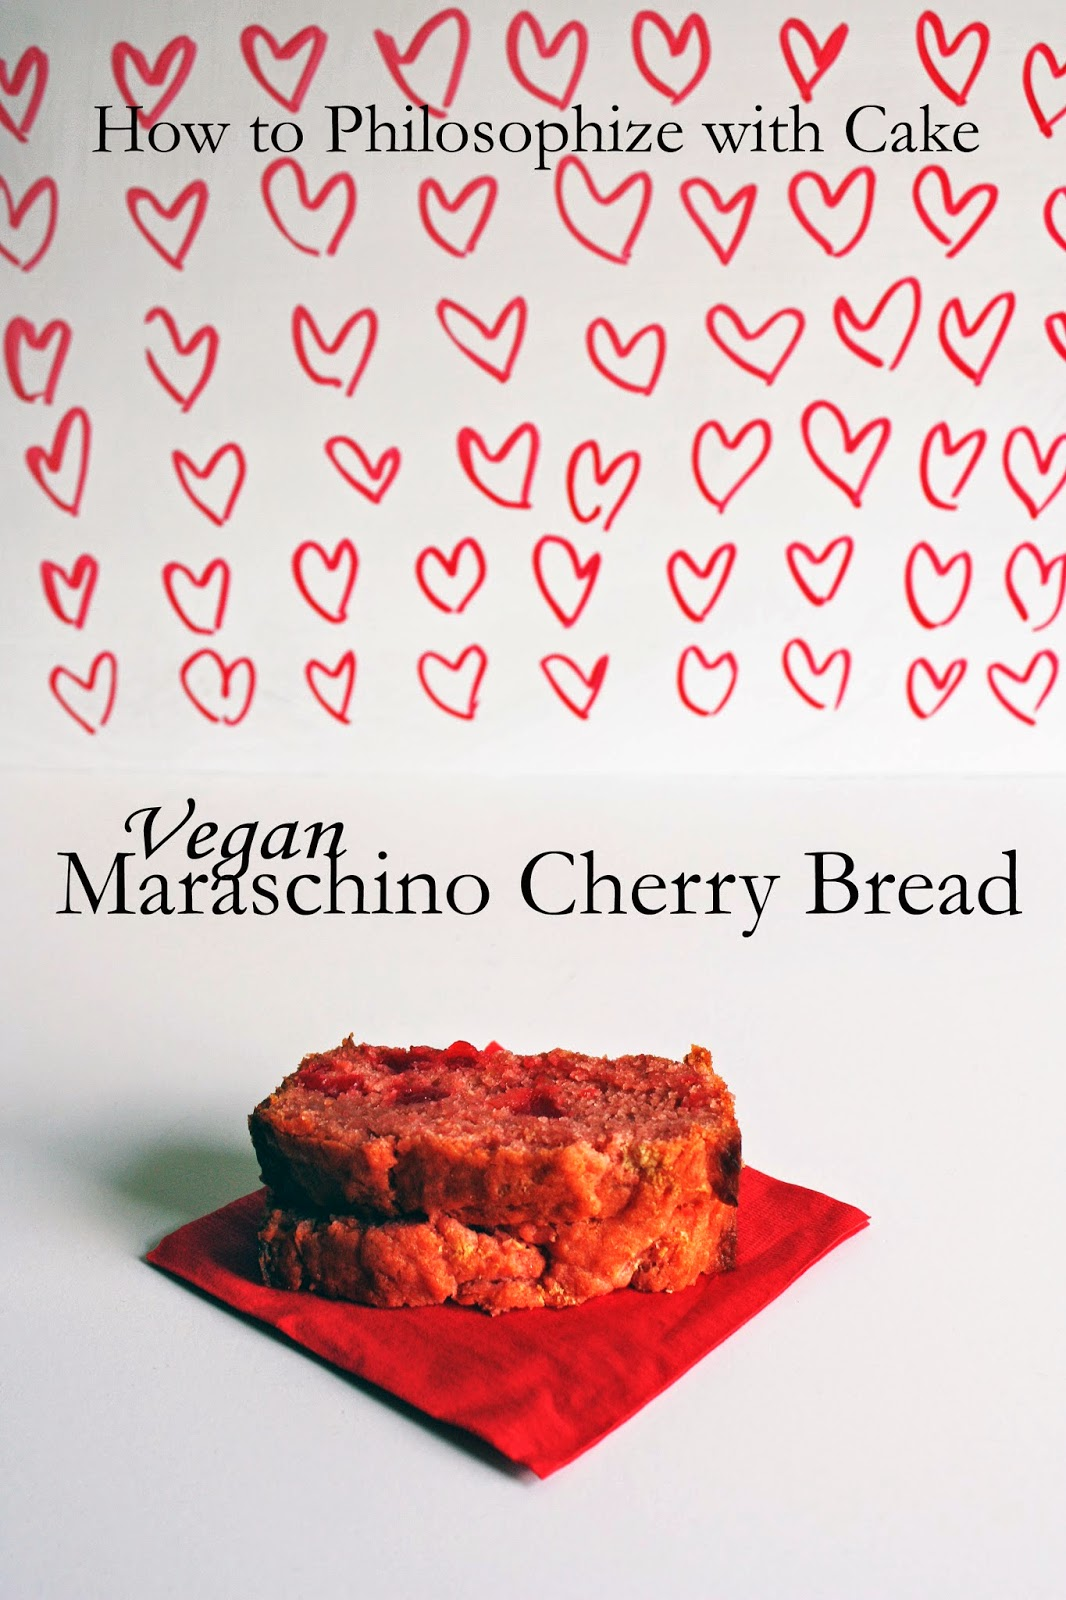 how to philosophize with cake vegan maraschino cherry quick bread